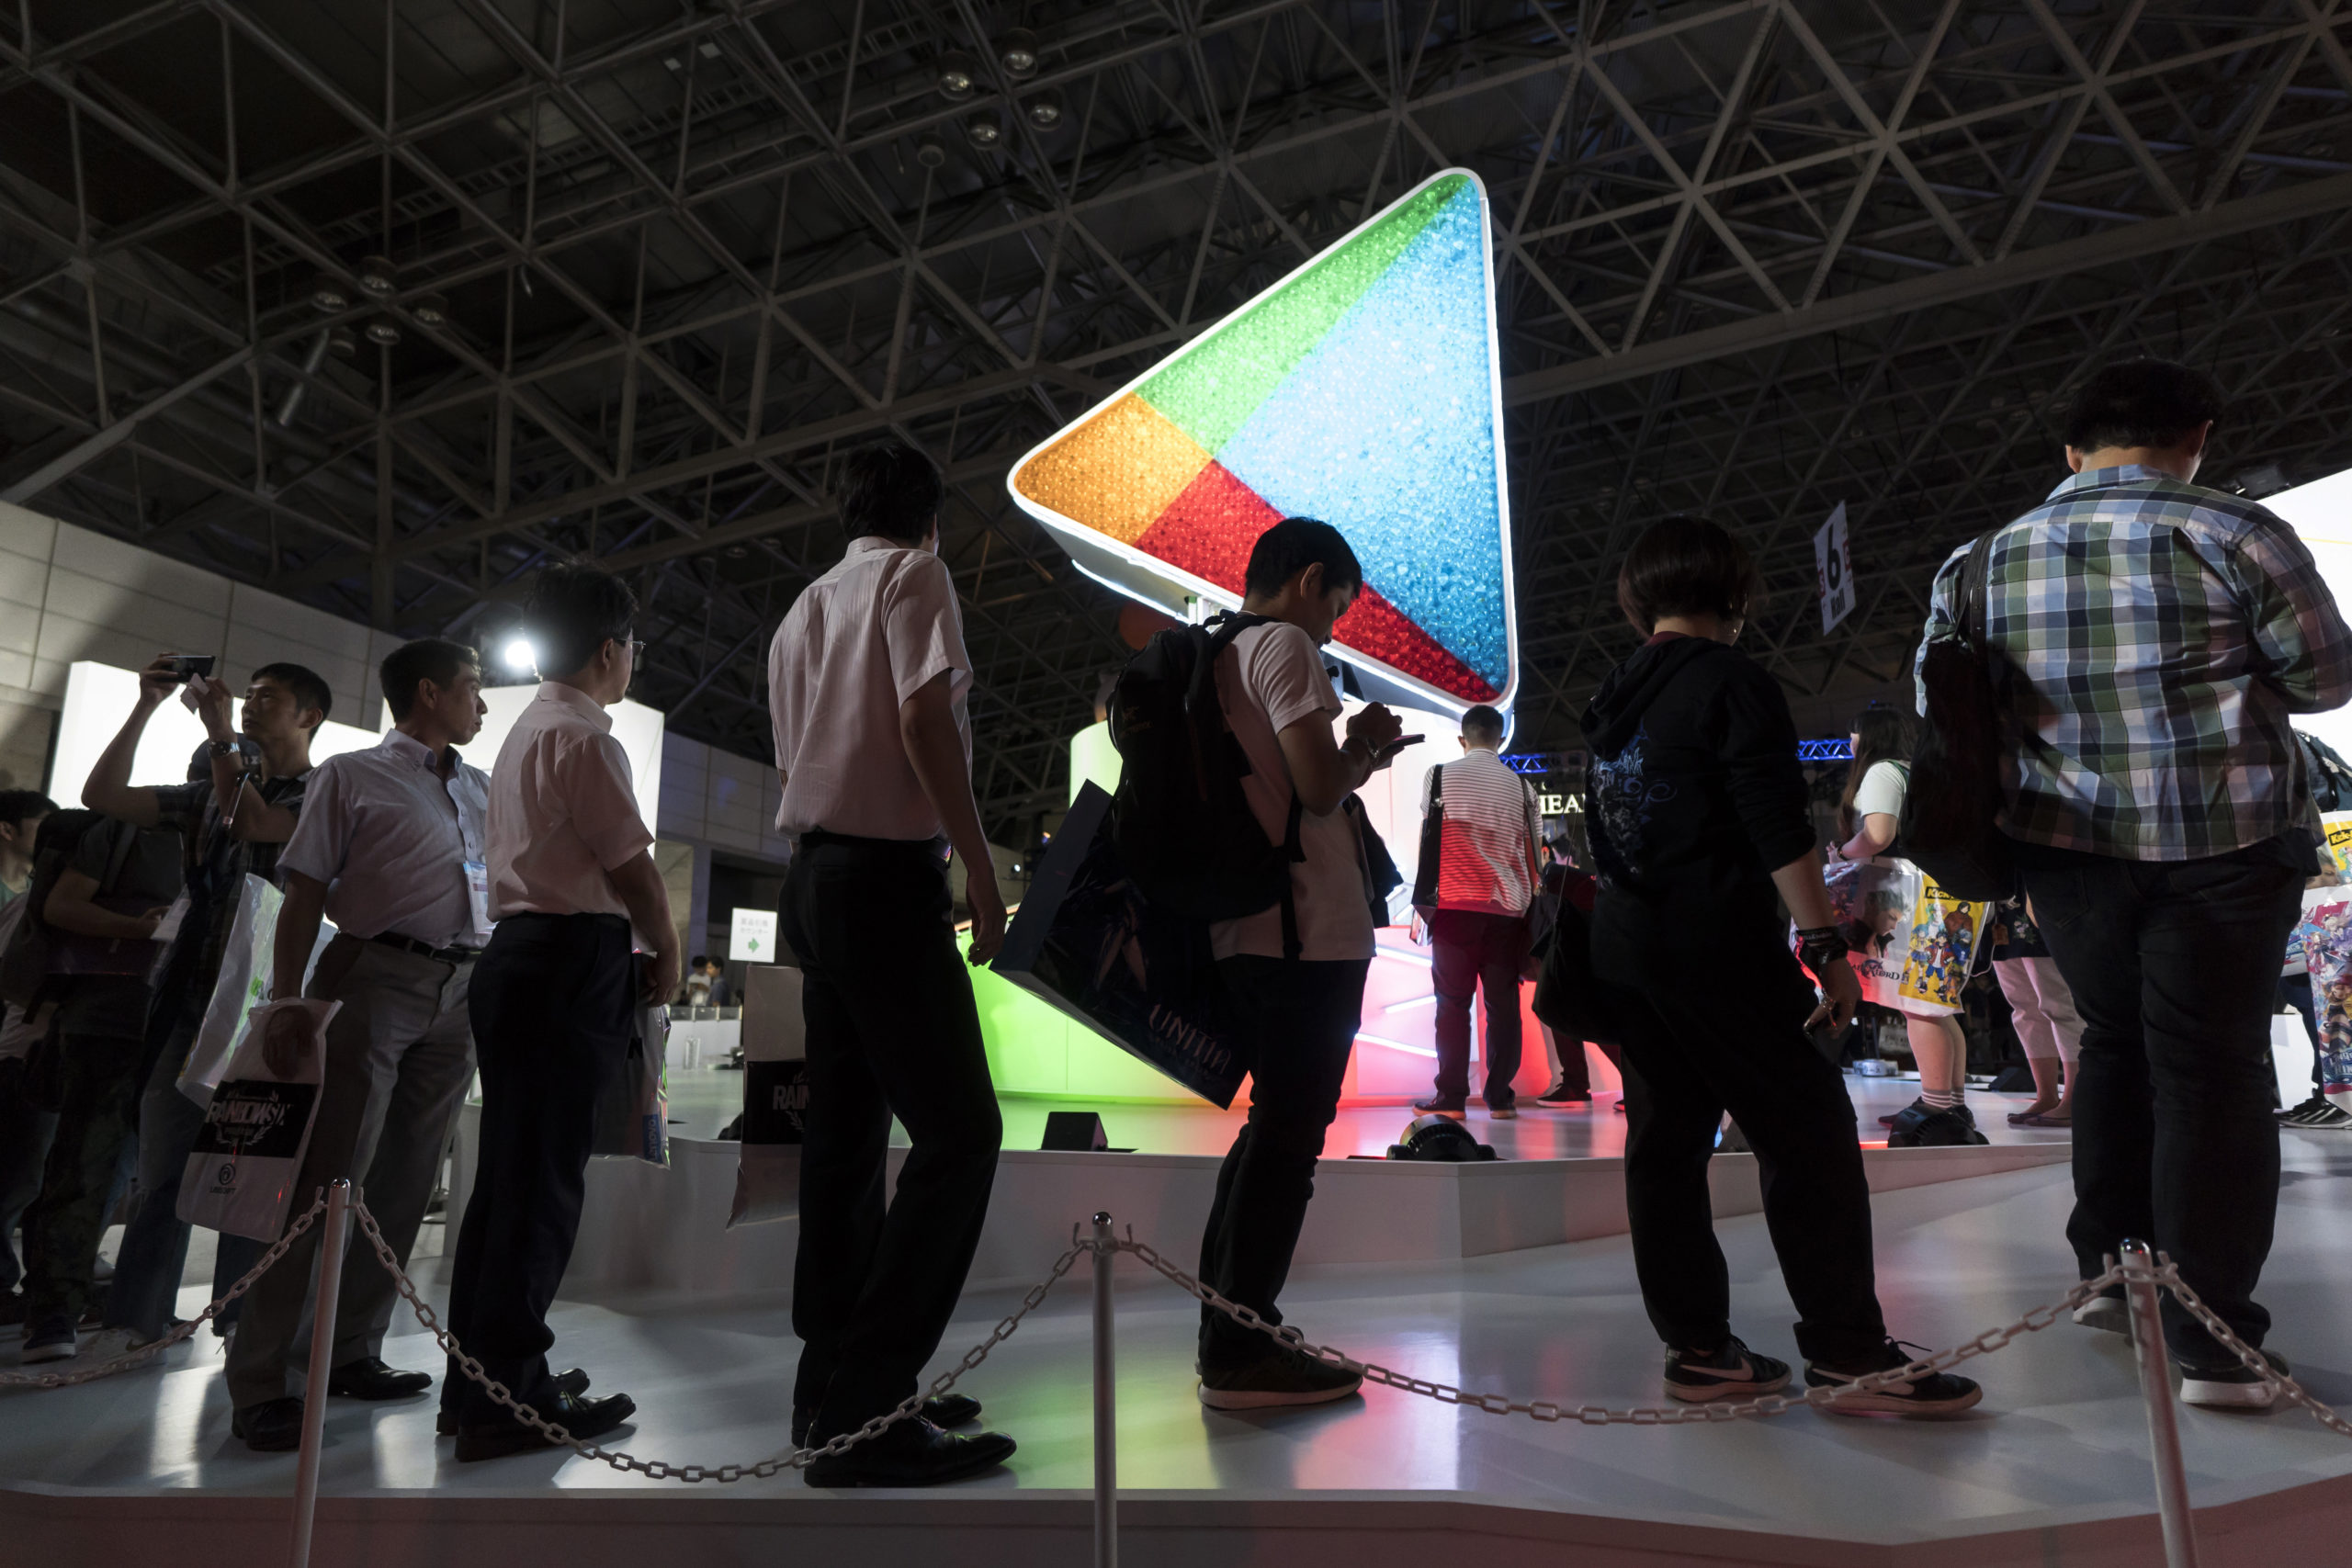 Attendees stand in front of the Google Play booth during the Tokyo Game Show 2018 on September 20, 2018 in Chiba, Japan. (Photo by Tomohiro Ohsumi/Getty Images)